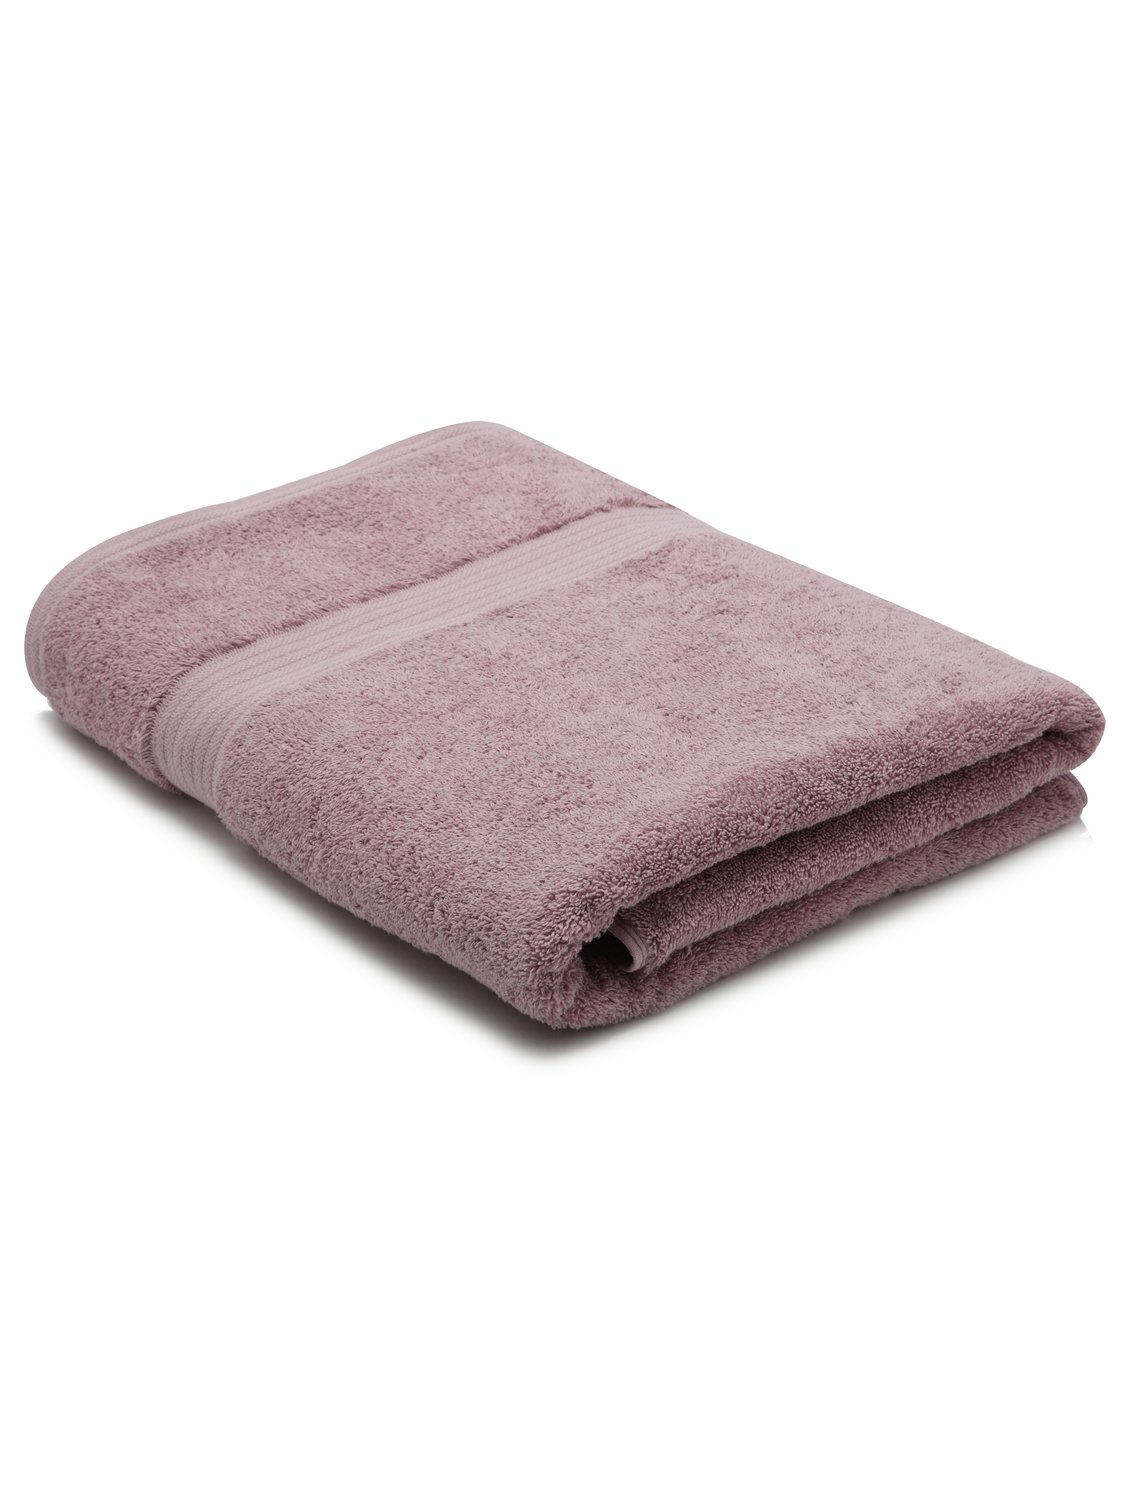 Image of 100% Combed Cotton 580Gsm Luxury Soft And Absorbent Bath Sheet - Amethyst